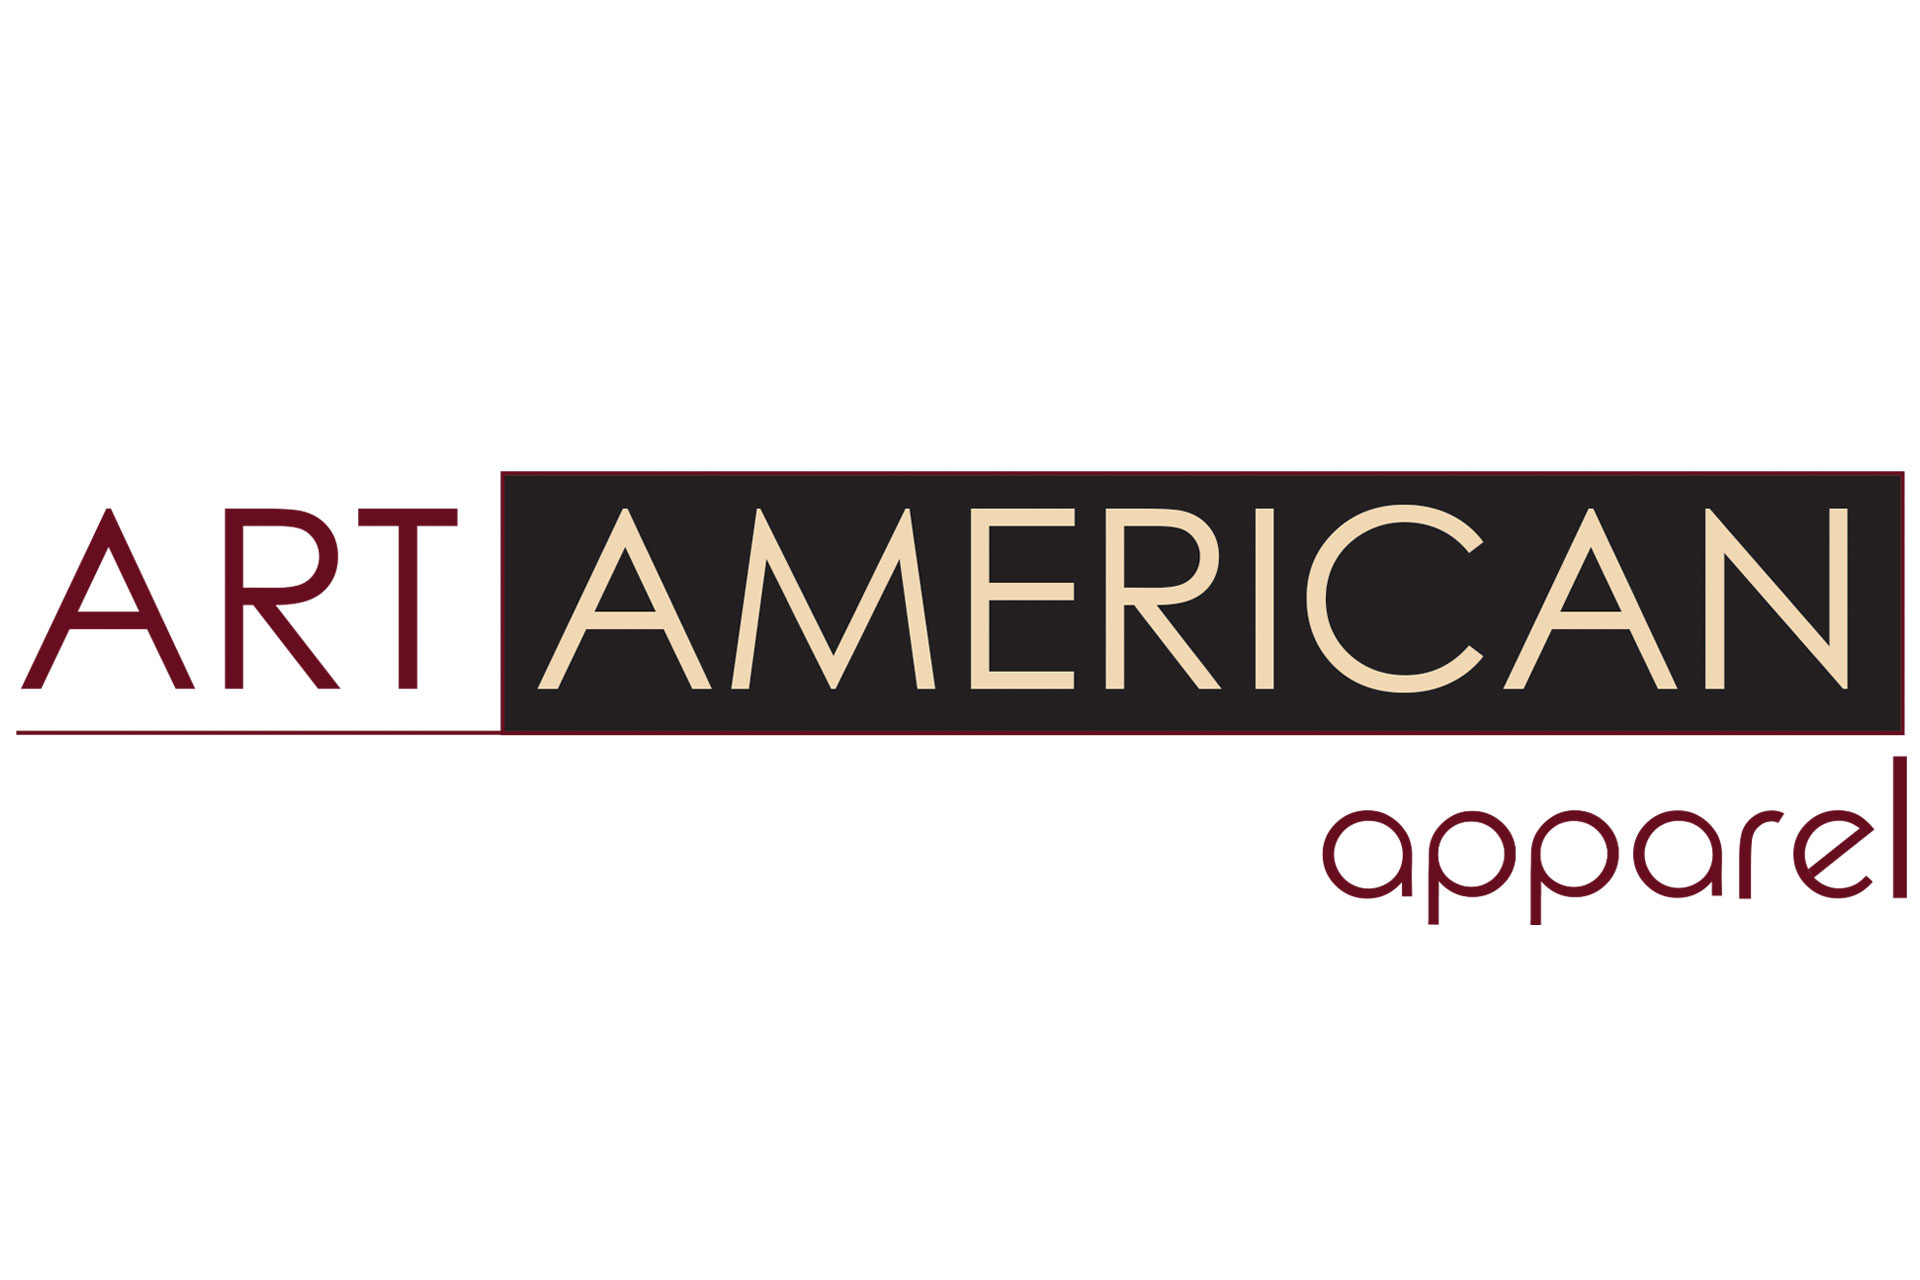 art american apparel logo